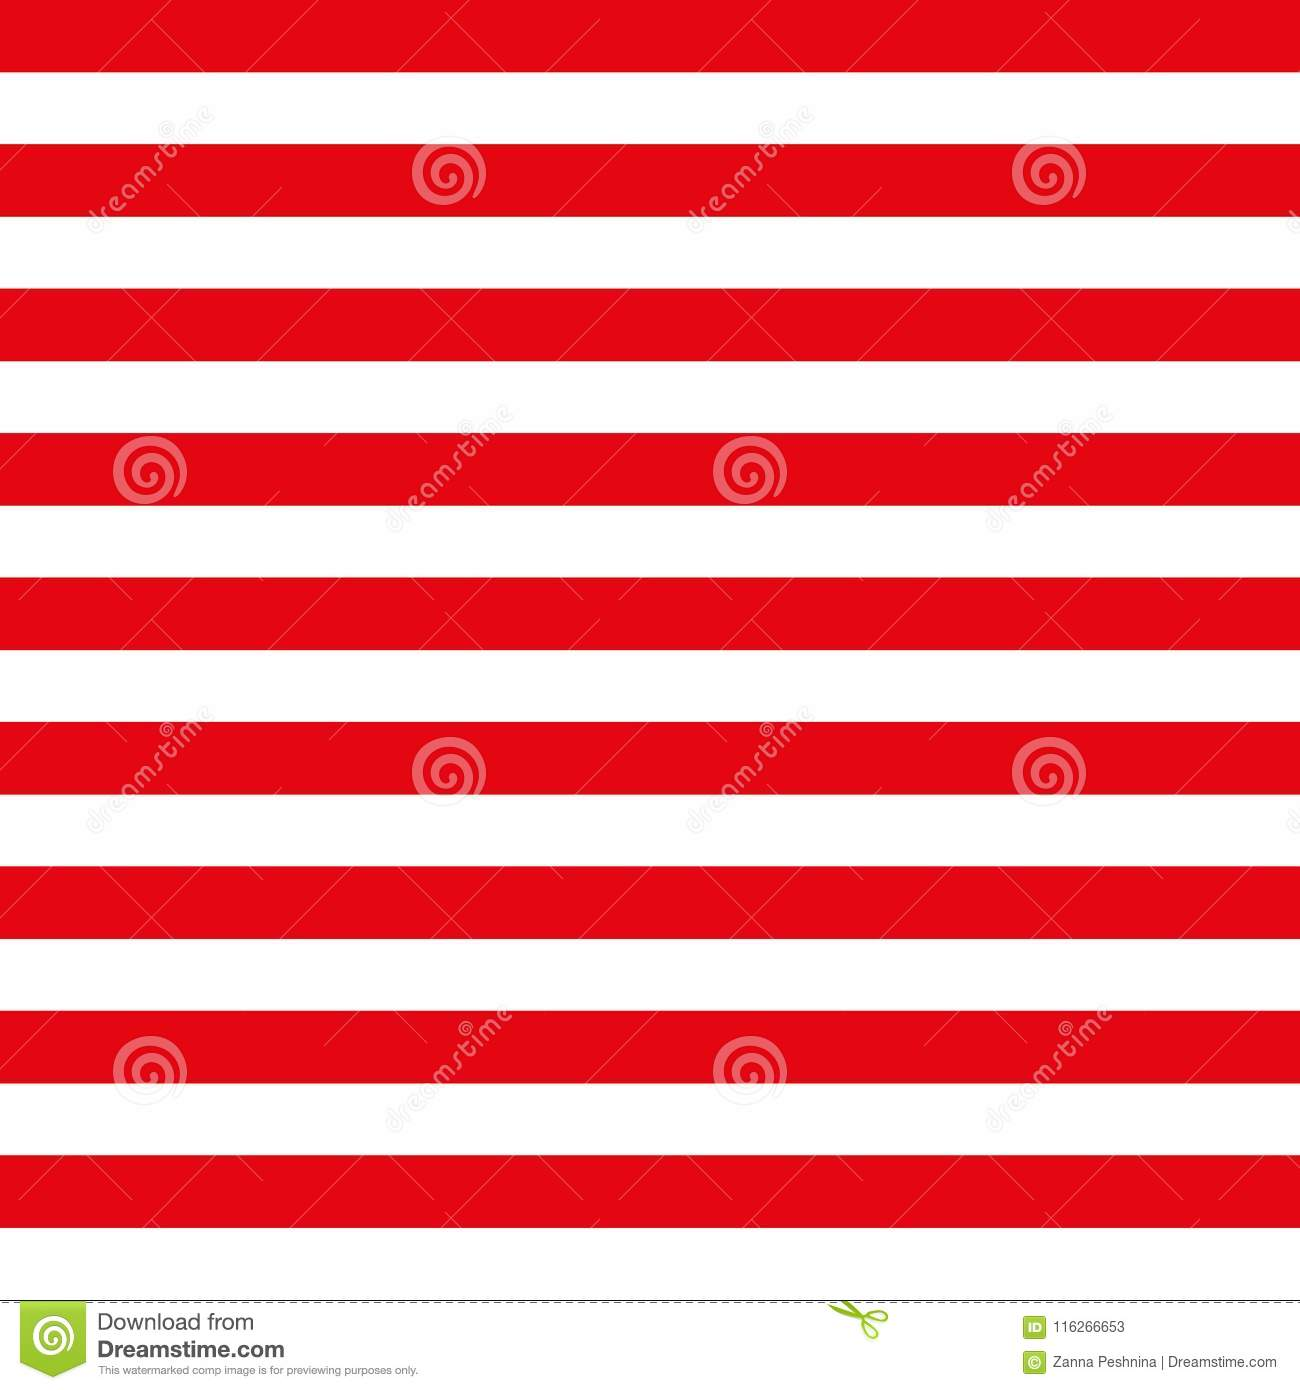 Red And White Striped Border Stock Illustration - Illustration of striped,  peppermint: 16948547